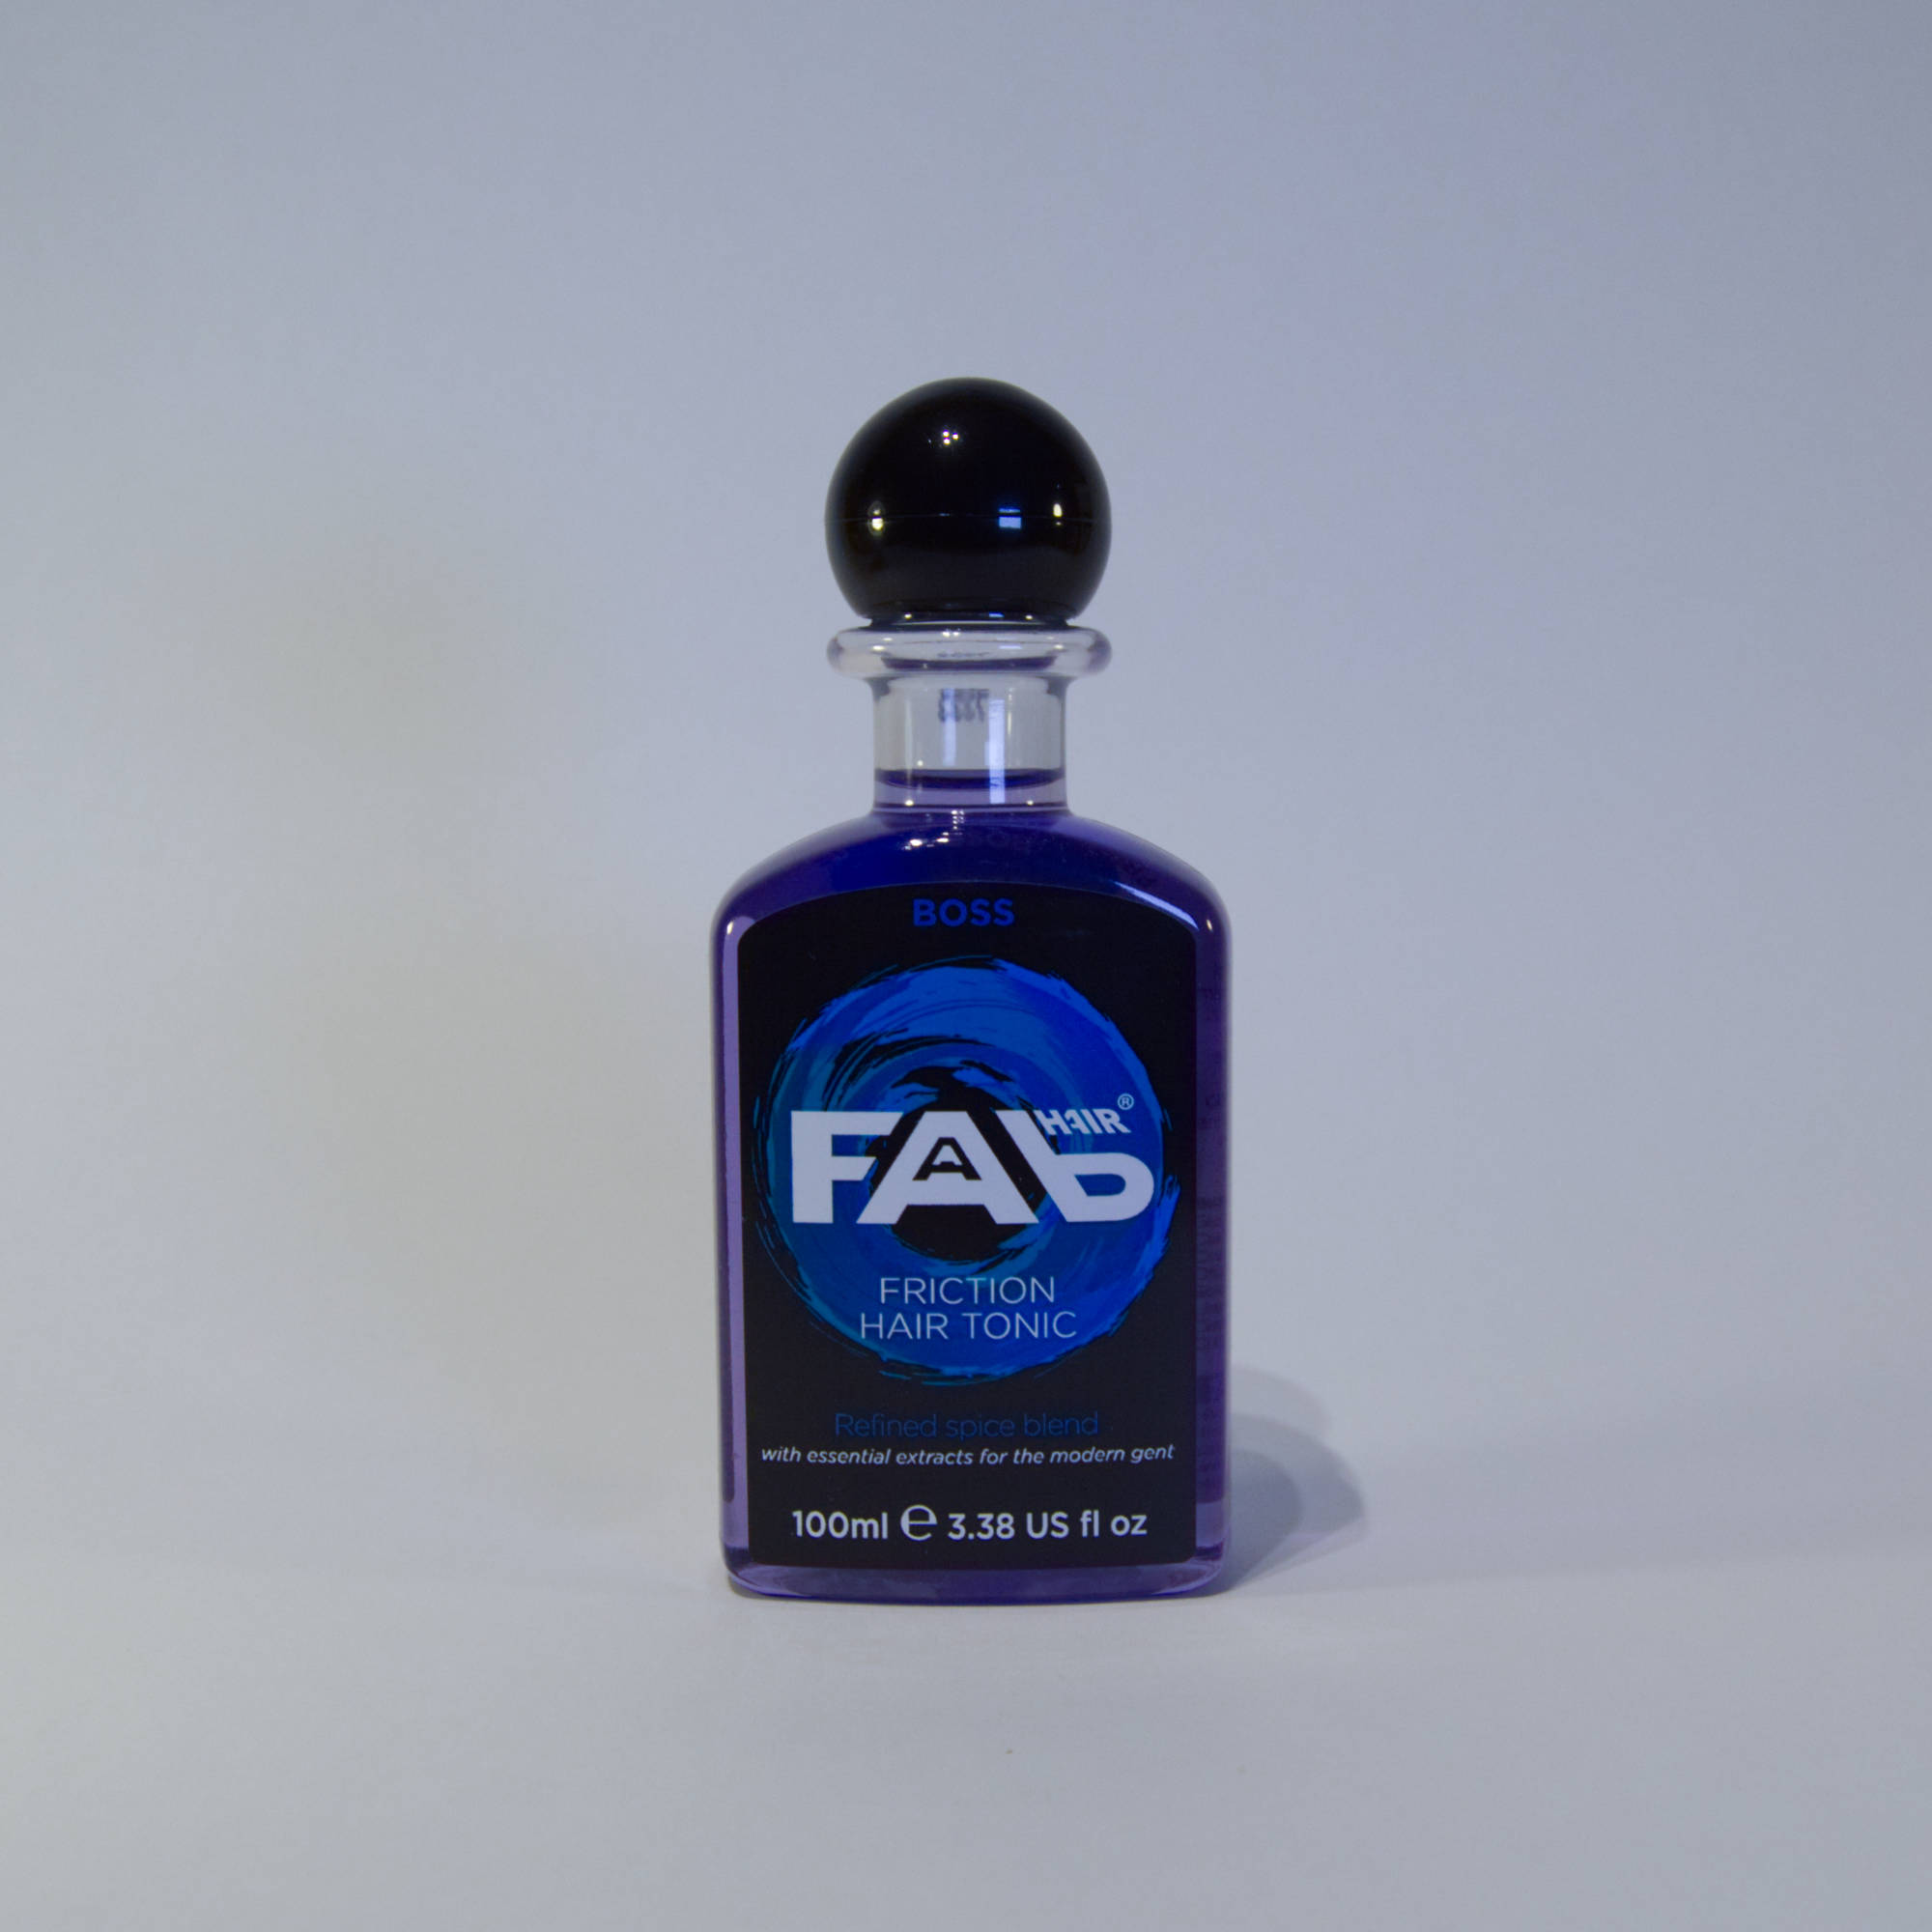 100ml bottle of Boss flavoured FAB friction hair tonic